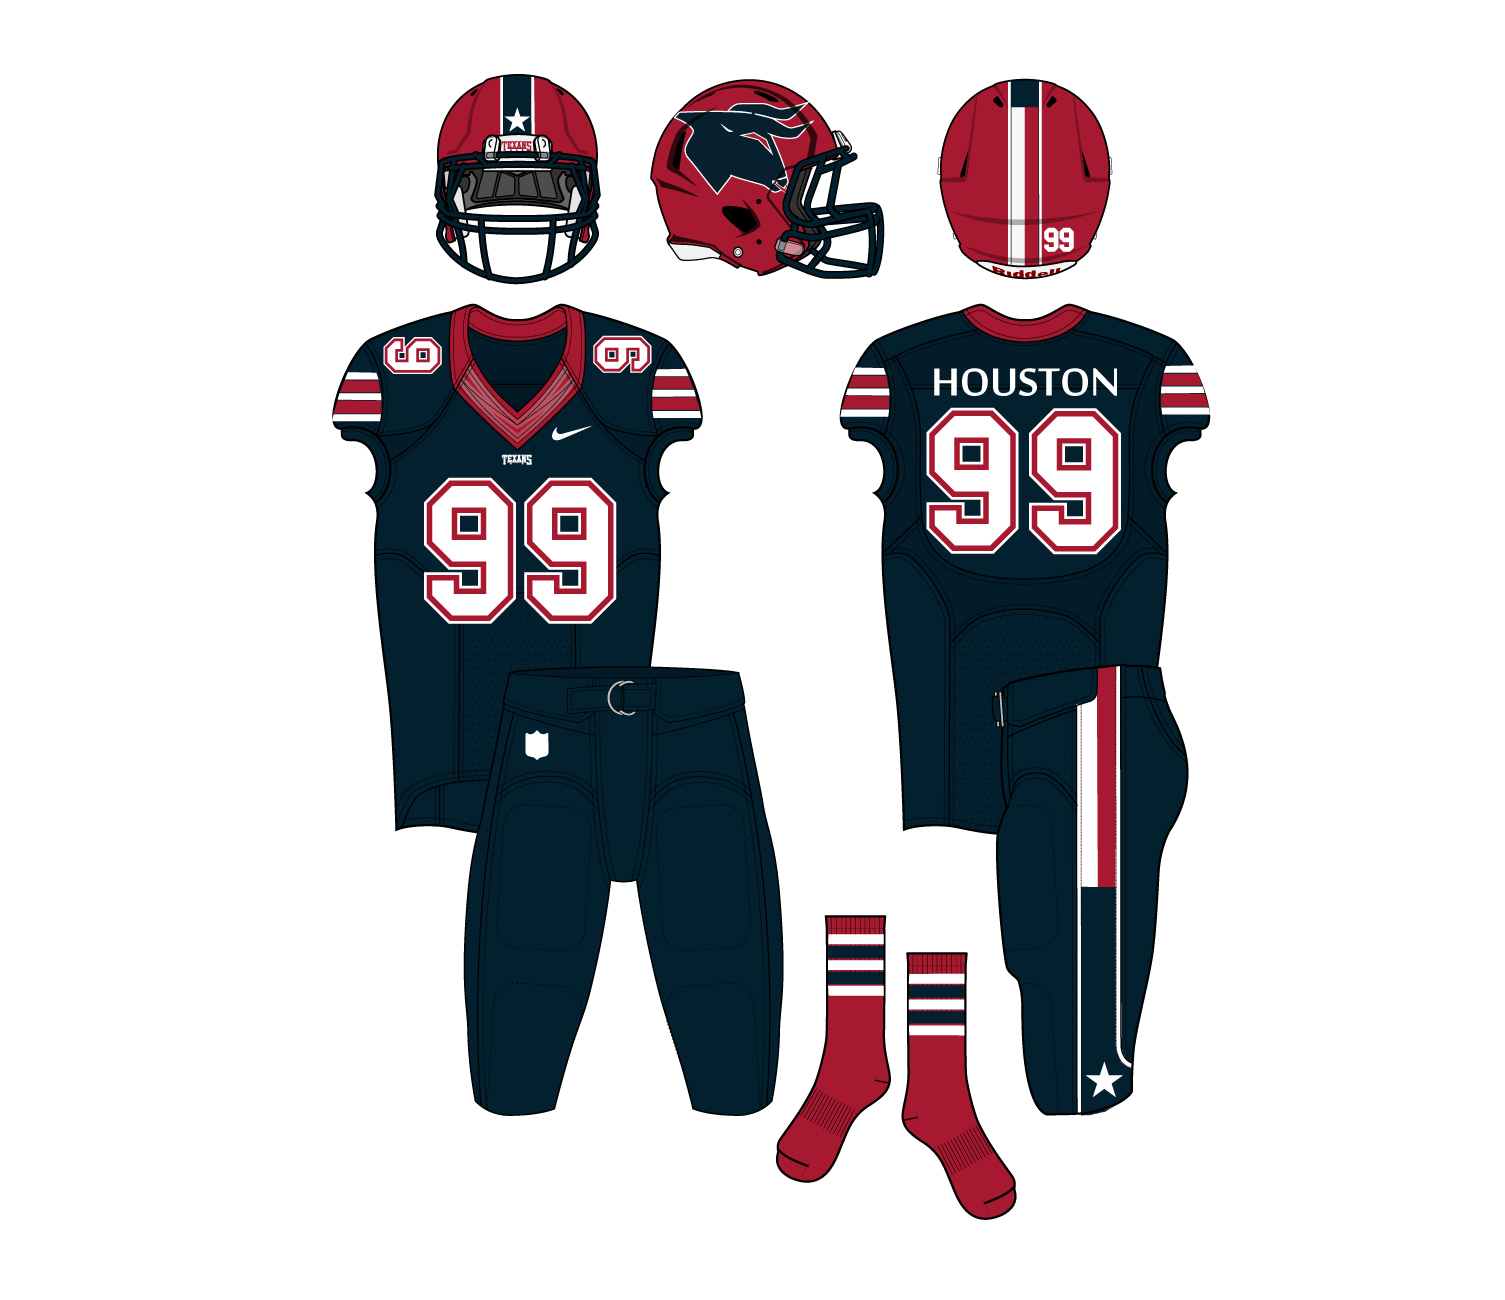 promo code 6b77c 4f815 Time For The Houston Texans To Rebrand Their Look – CBS Houston